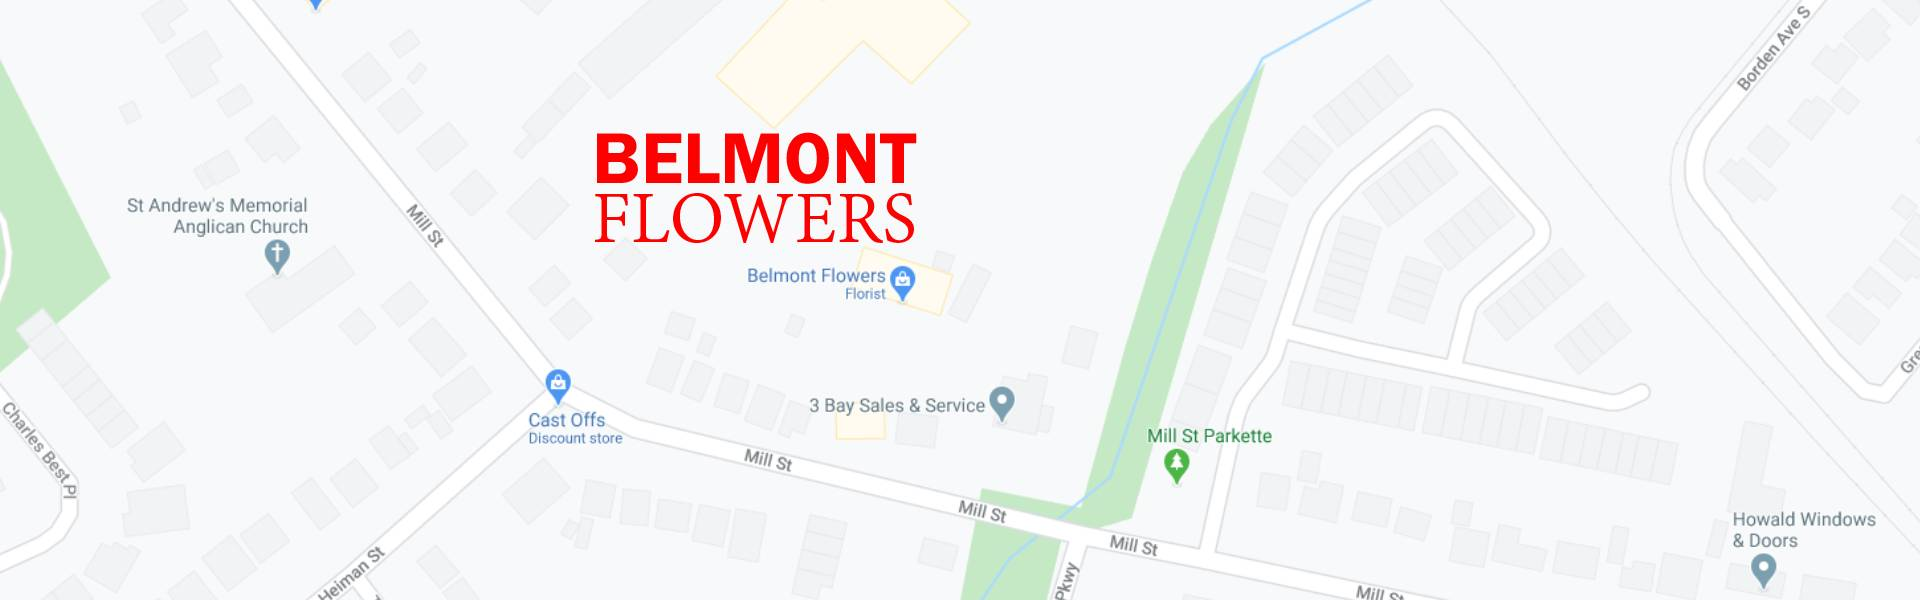 Belmont Flowers Location Map